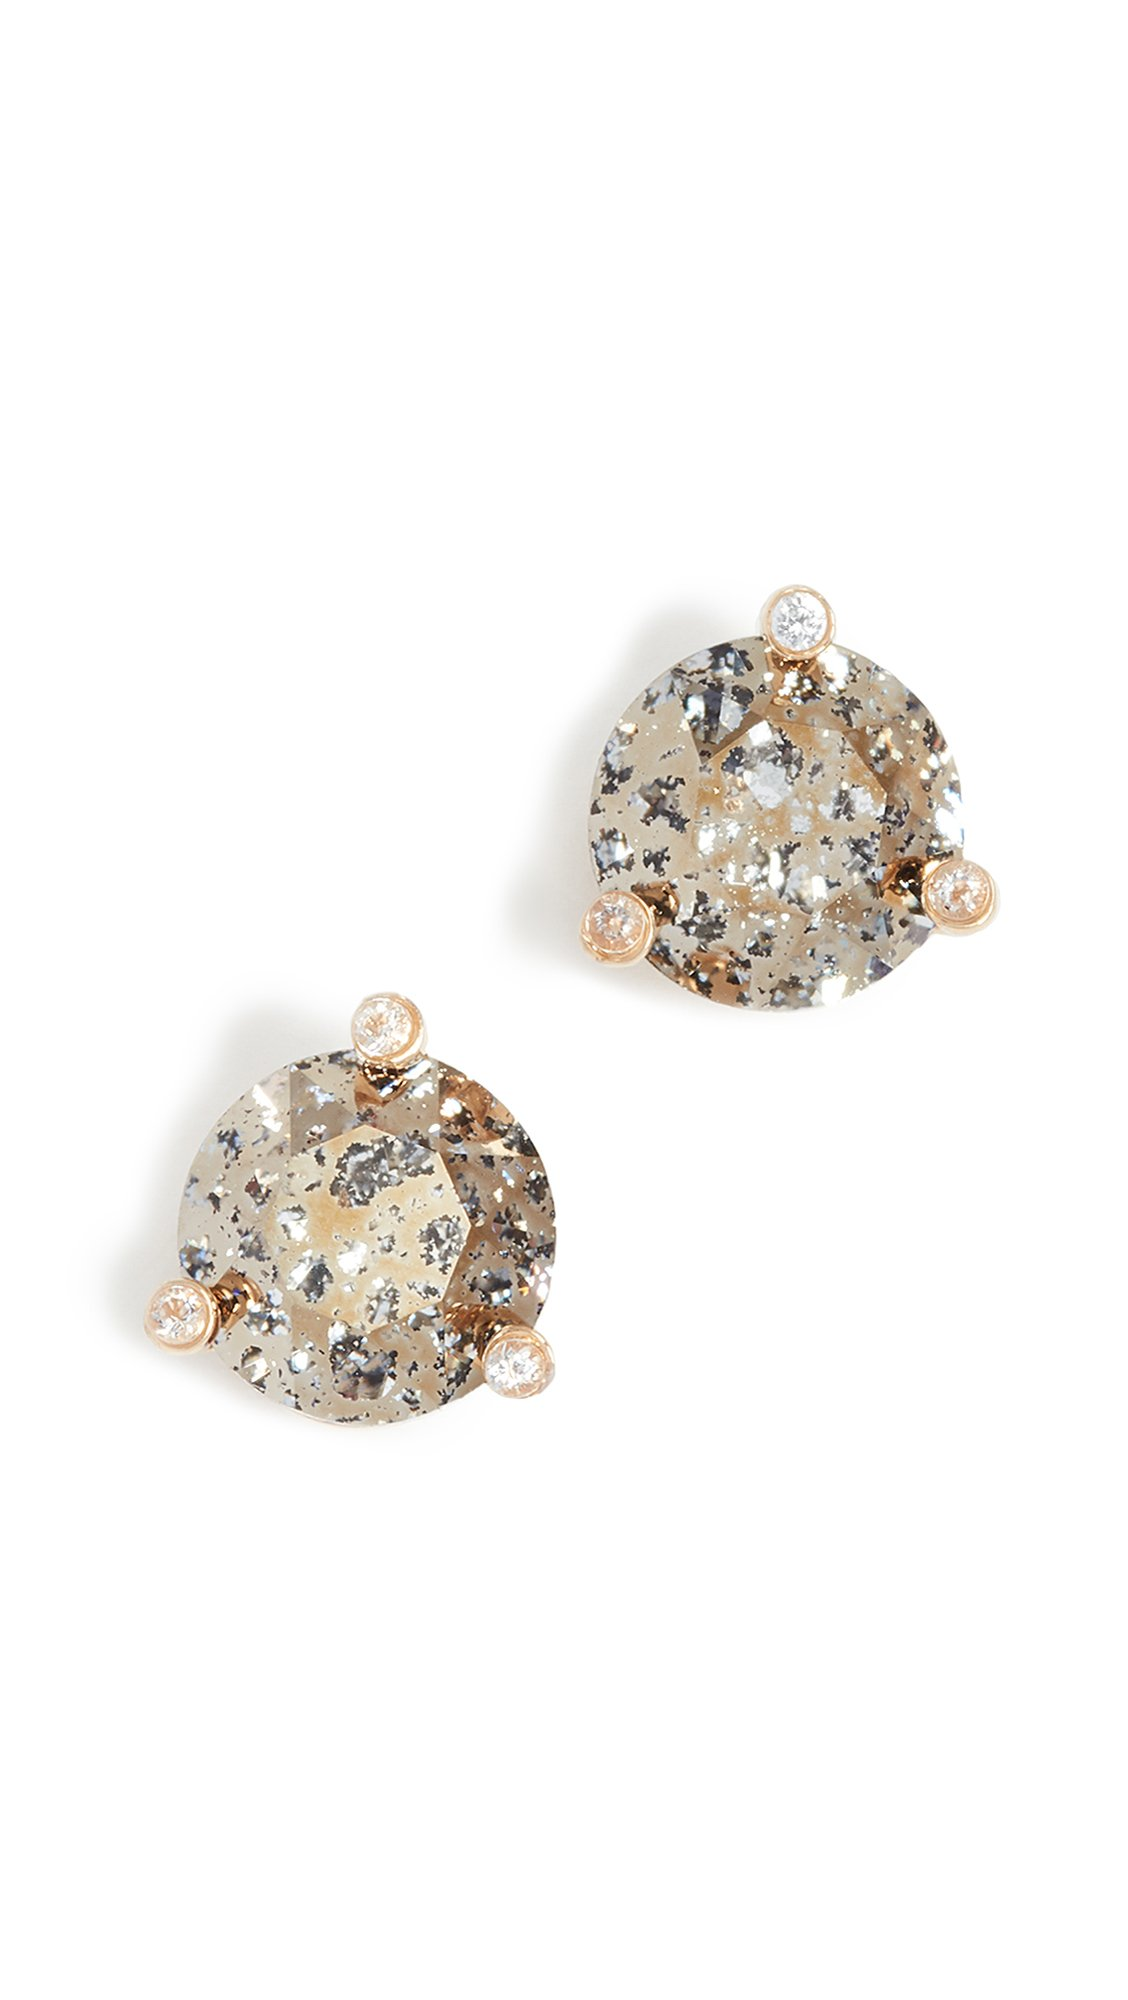 kate spade new york Small Studs Gold Patina Stud Earrings